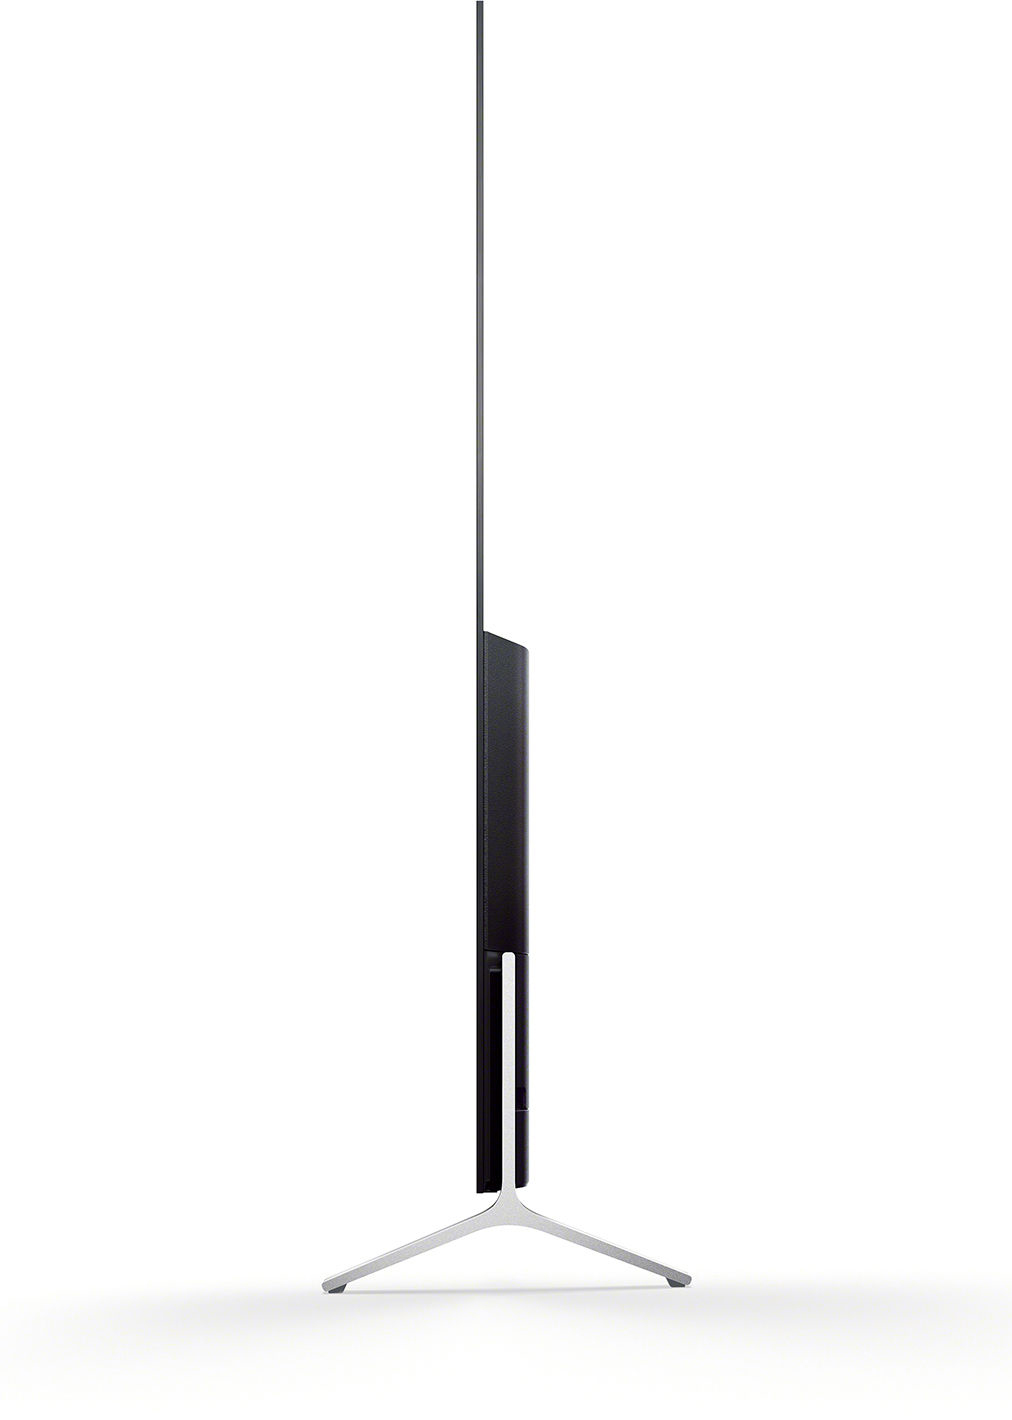 Sony's X90C is an absurdly thin TV.